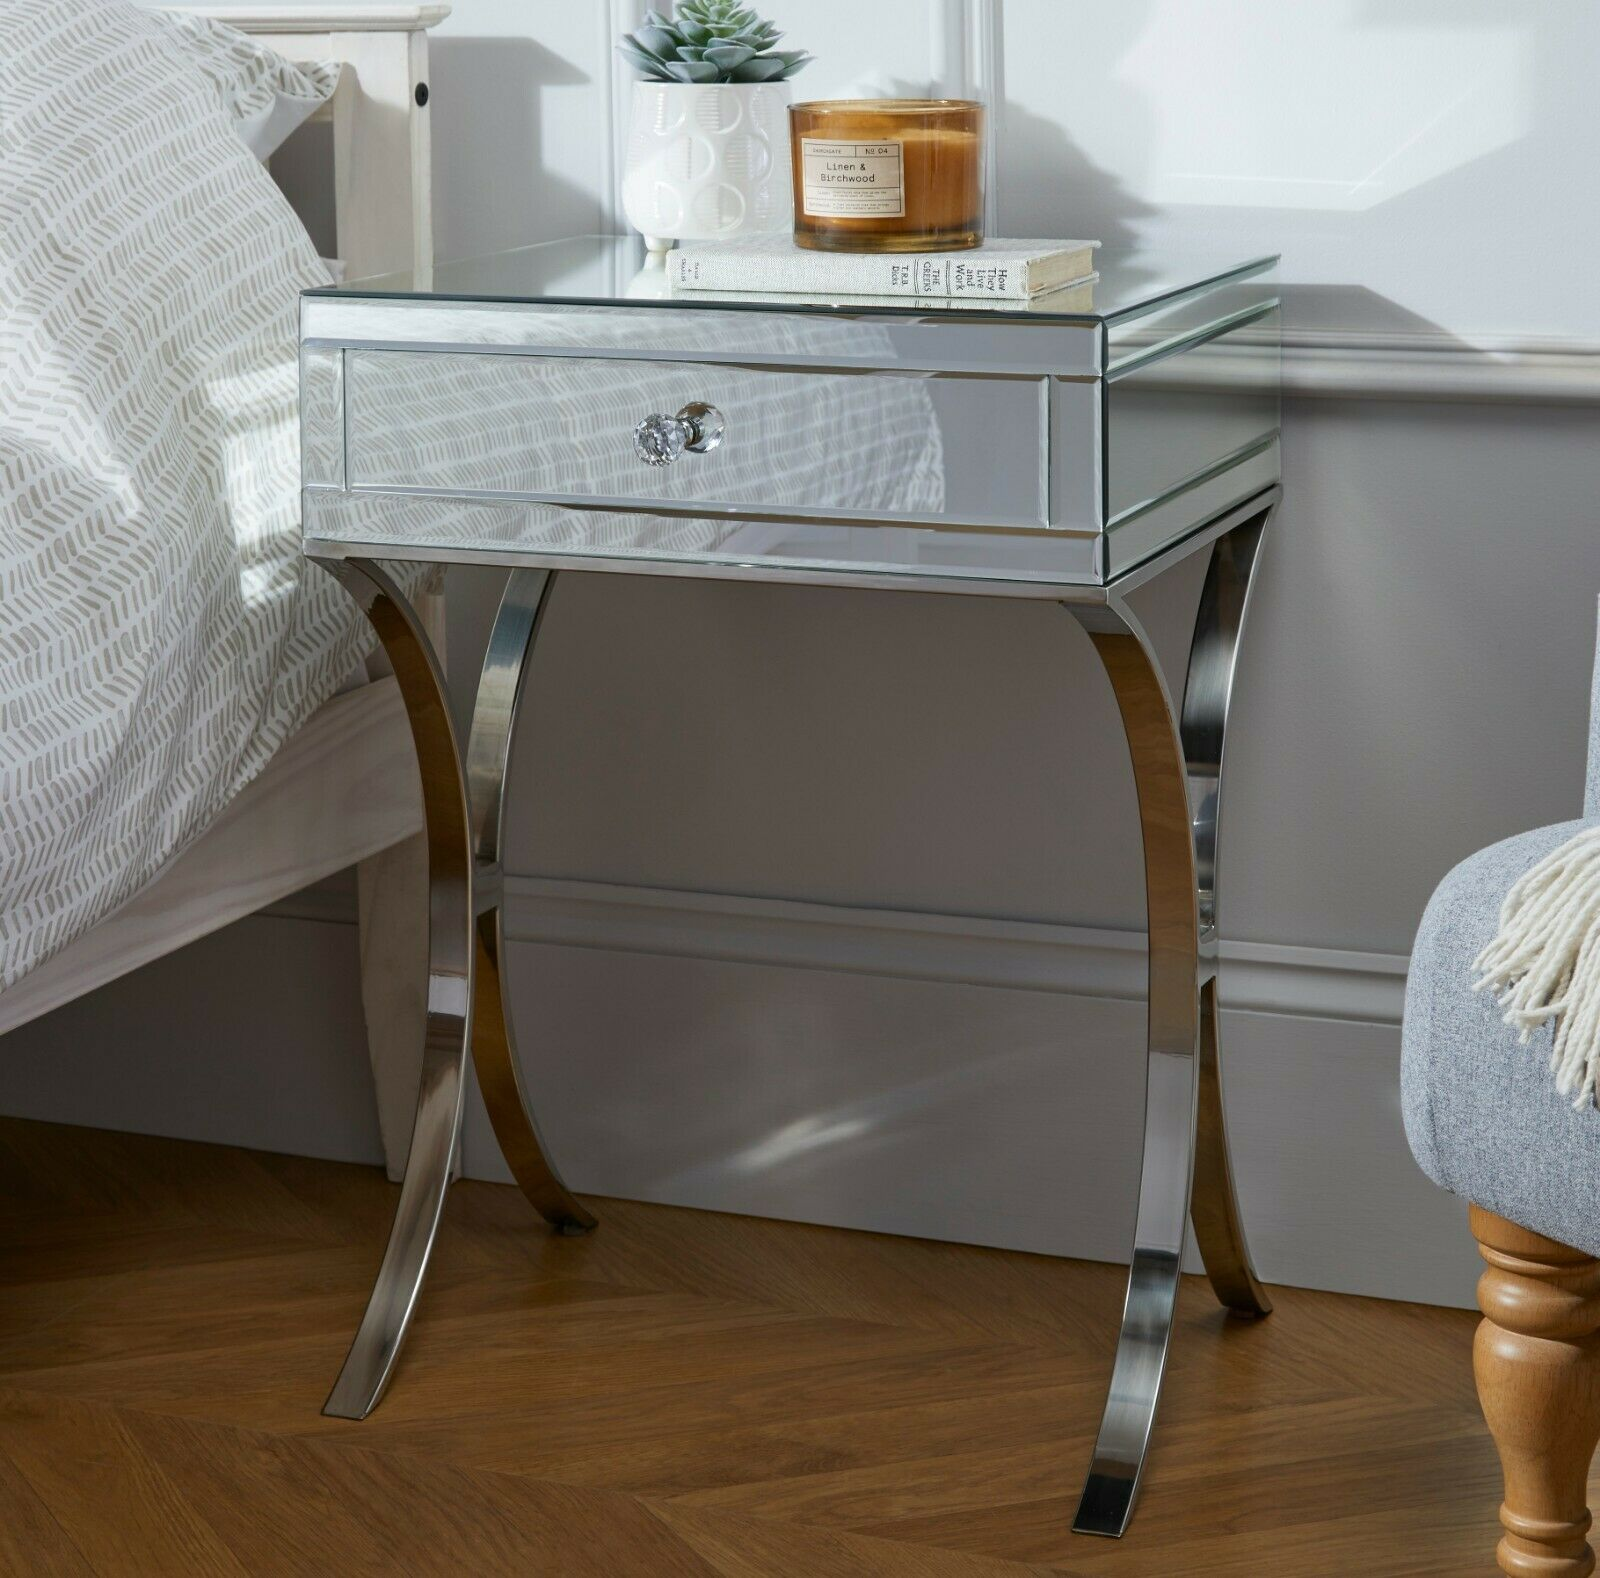 PORTO Mirrored Bedside Bed SideTable Cabinet Draws Bedroom ...